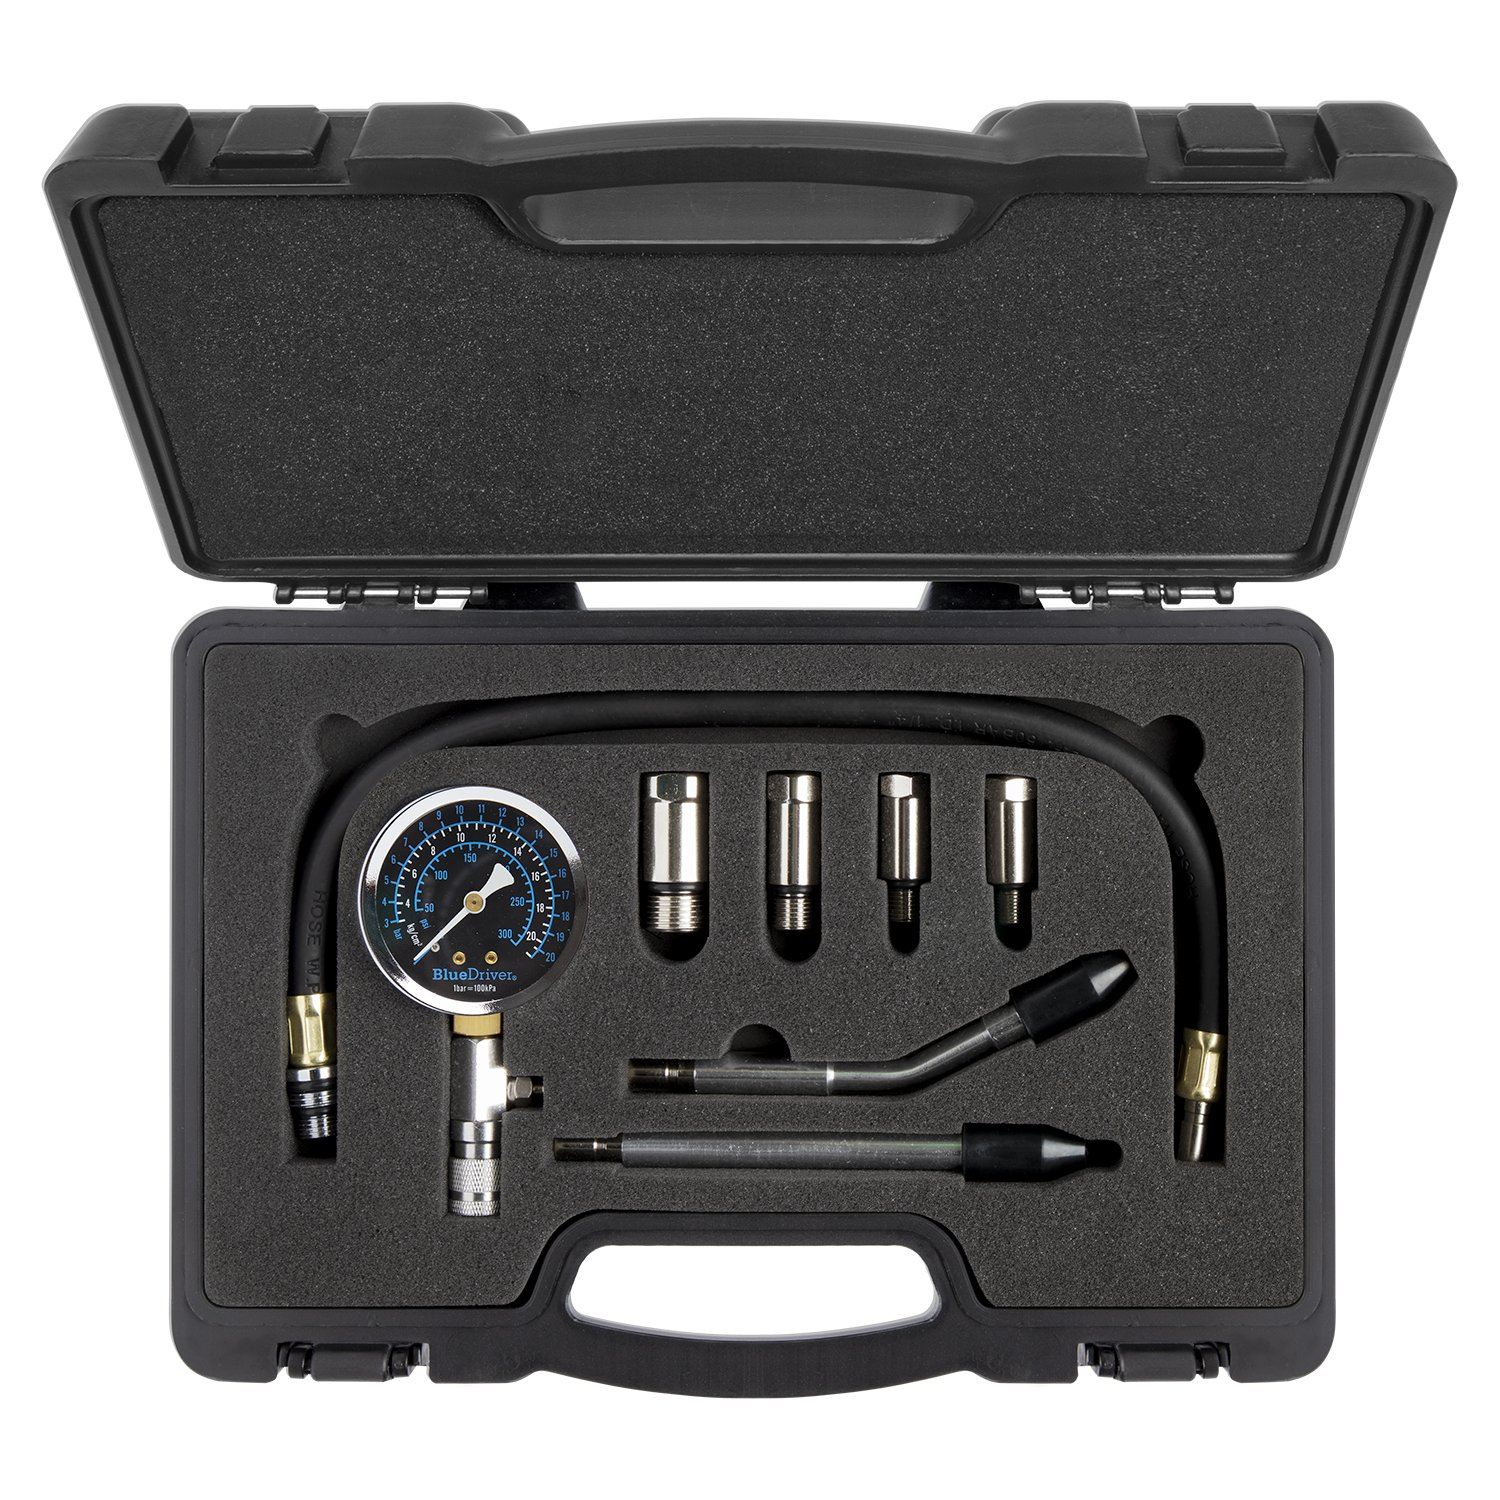 BlueDriver Compression Tester Kit (8 Piece Set)